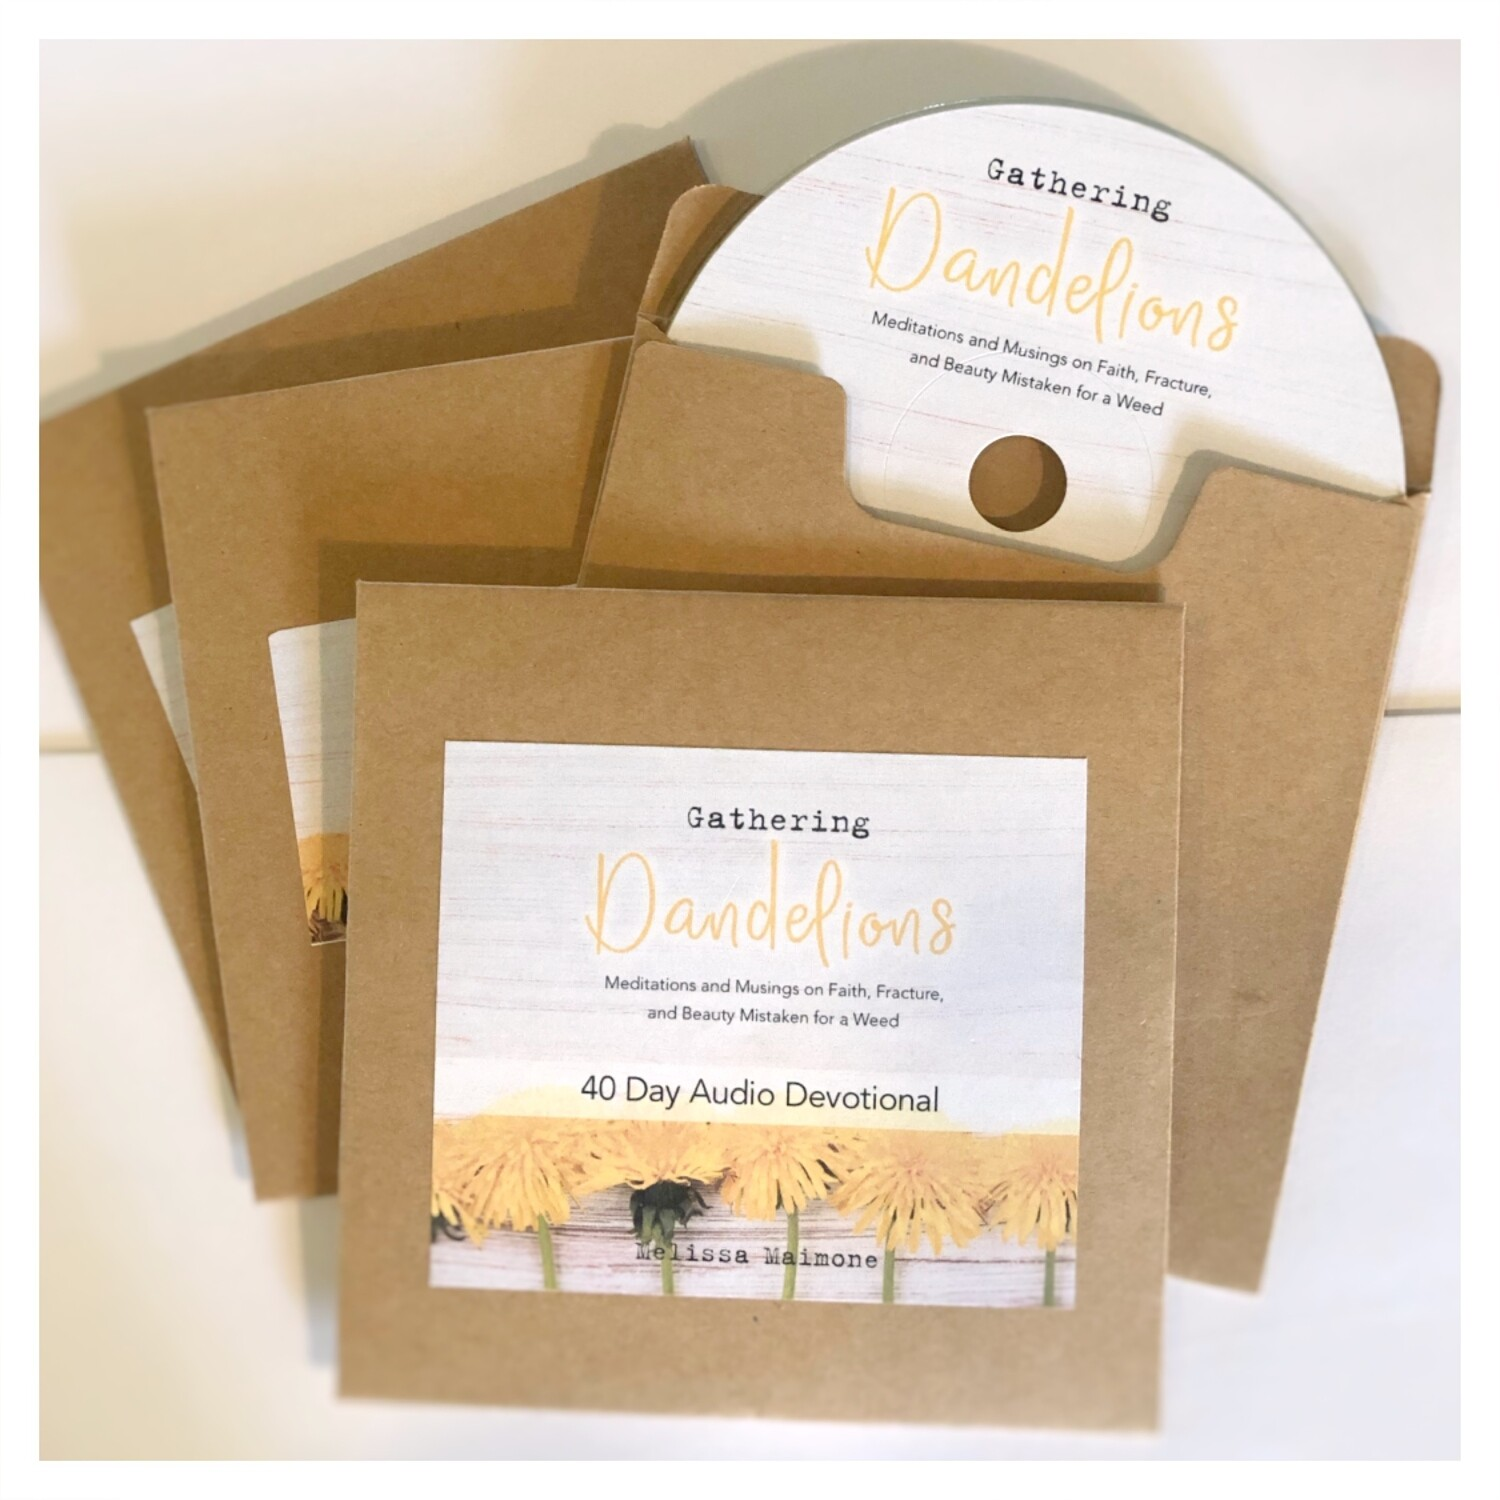 3. Gathering Dandelions - AUDIO BOOK on CD (4 CD's Total)